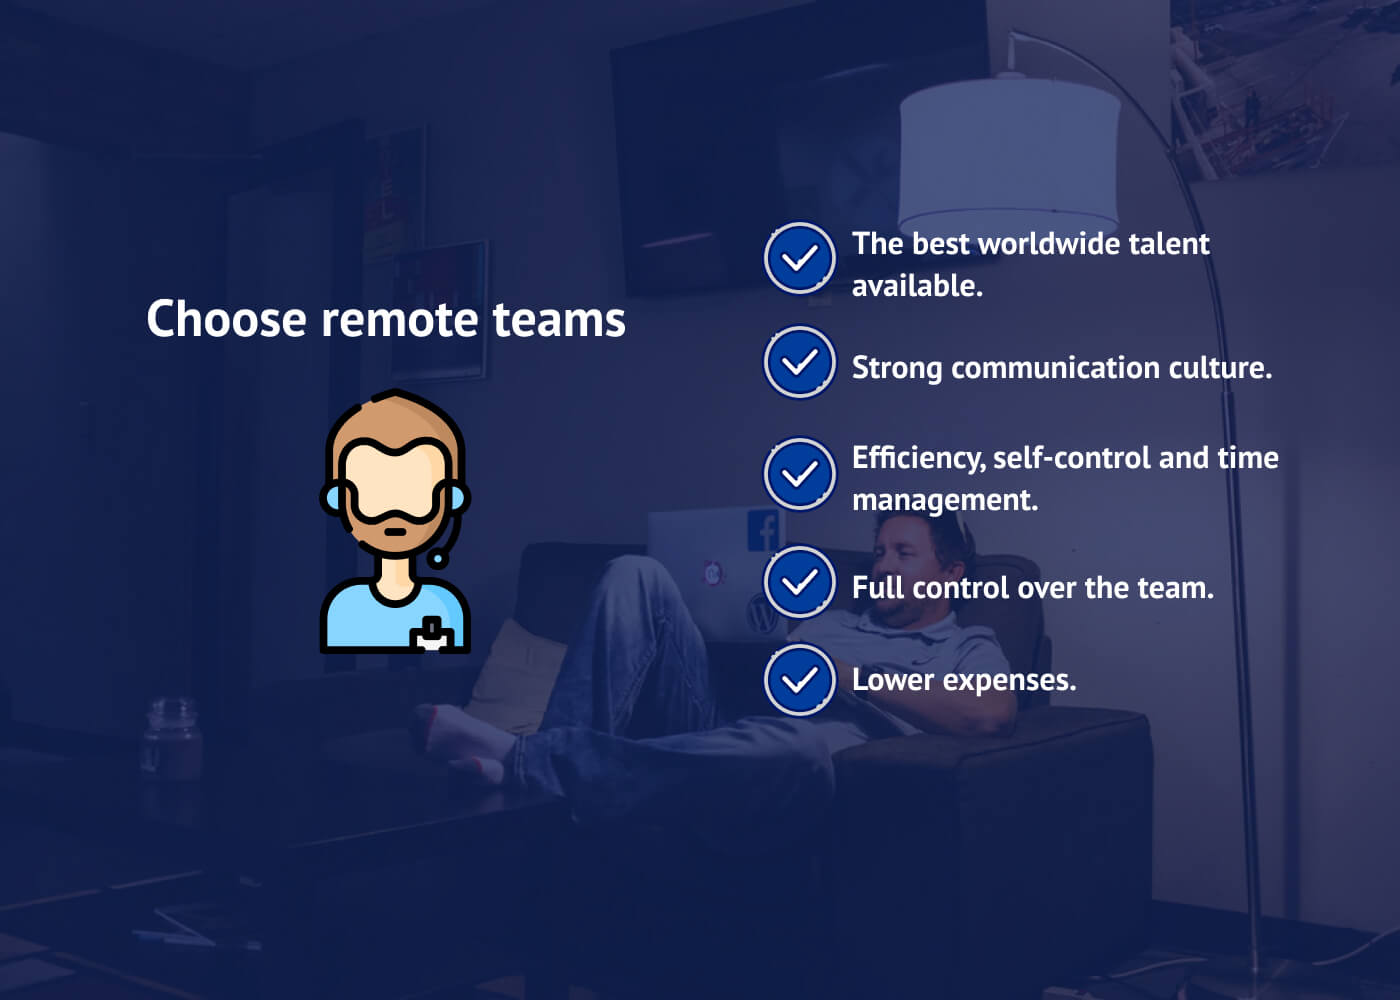 Why you should pick remote teams over local ones.